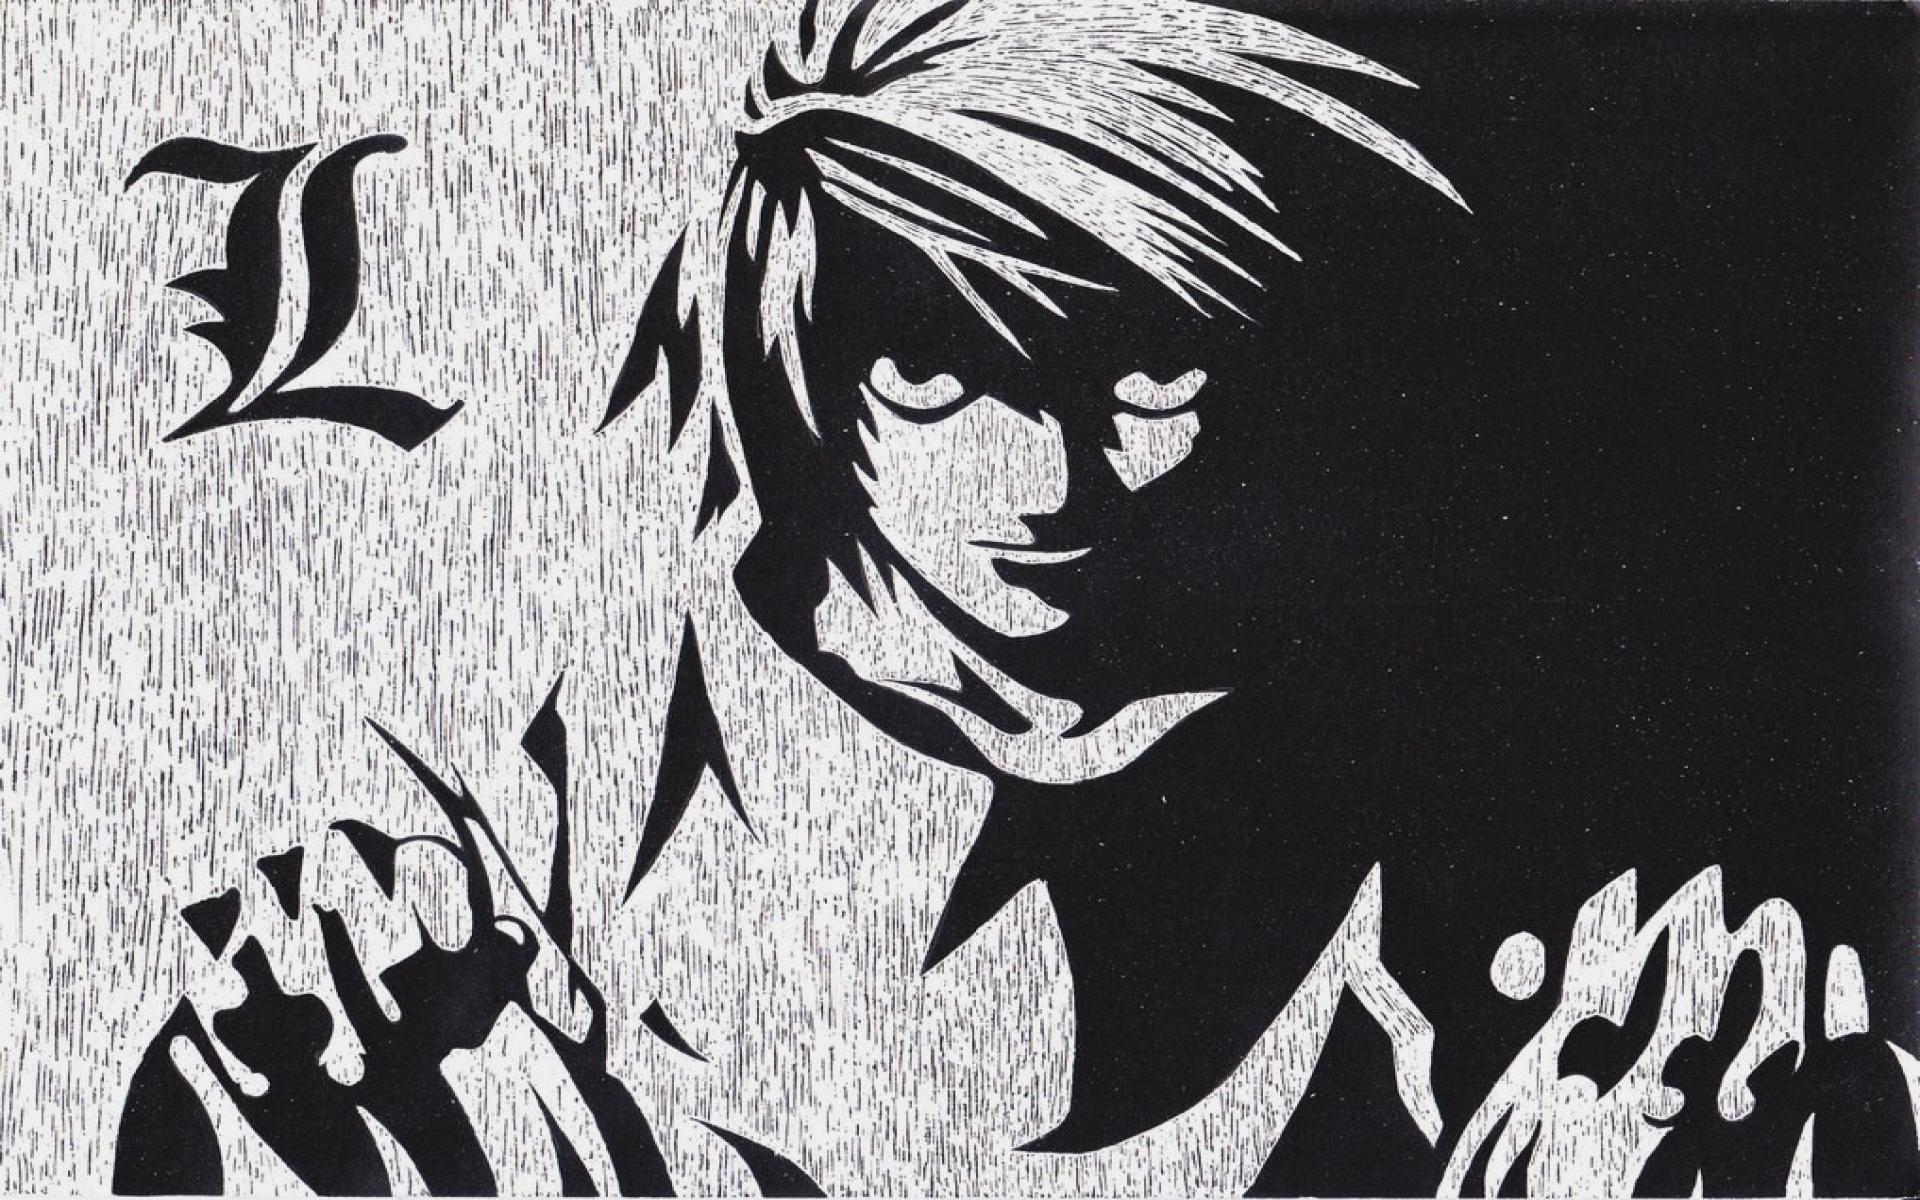 Cool Death Note L 2287629 Hd Wallpaper Backgrounds Download